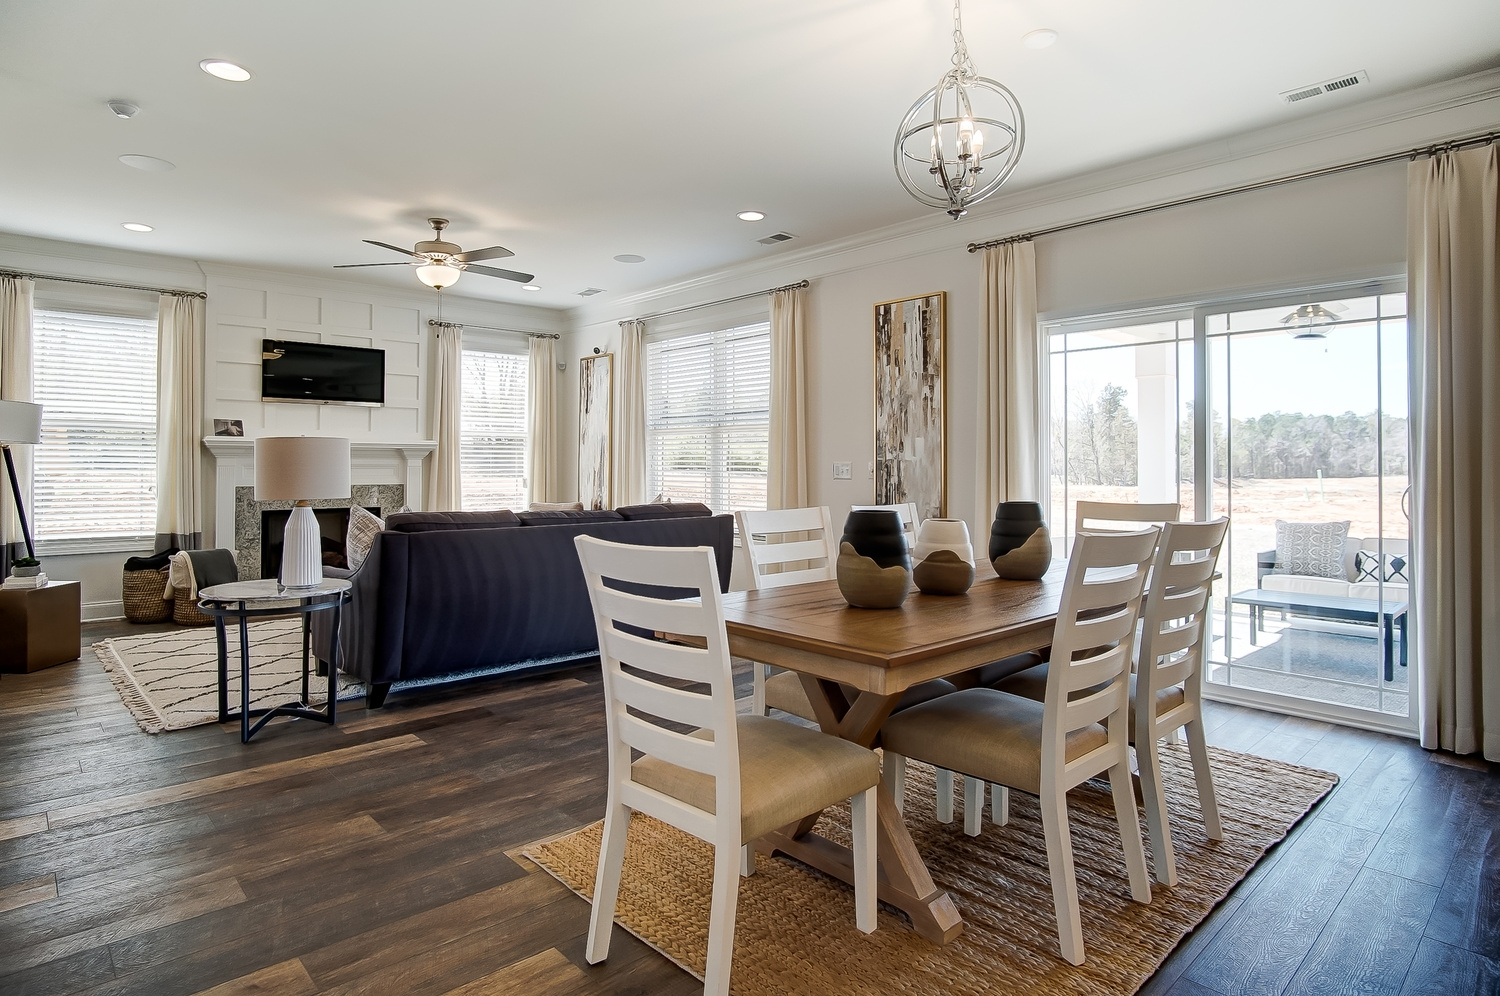 Drexel Breakfast Area and Family Room